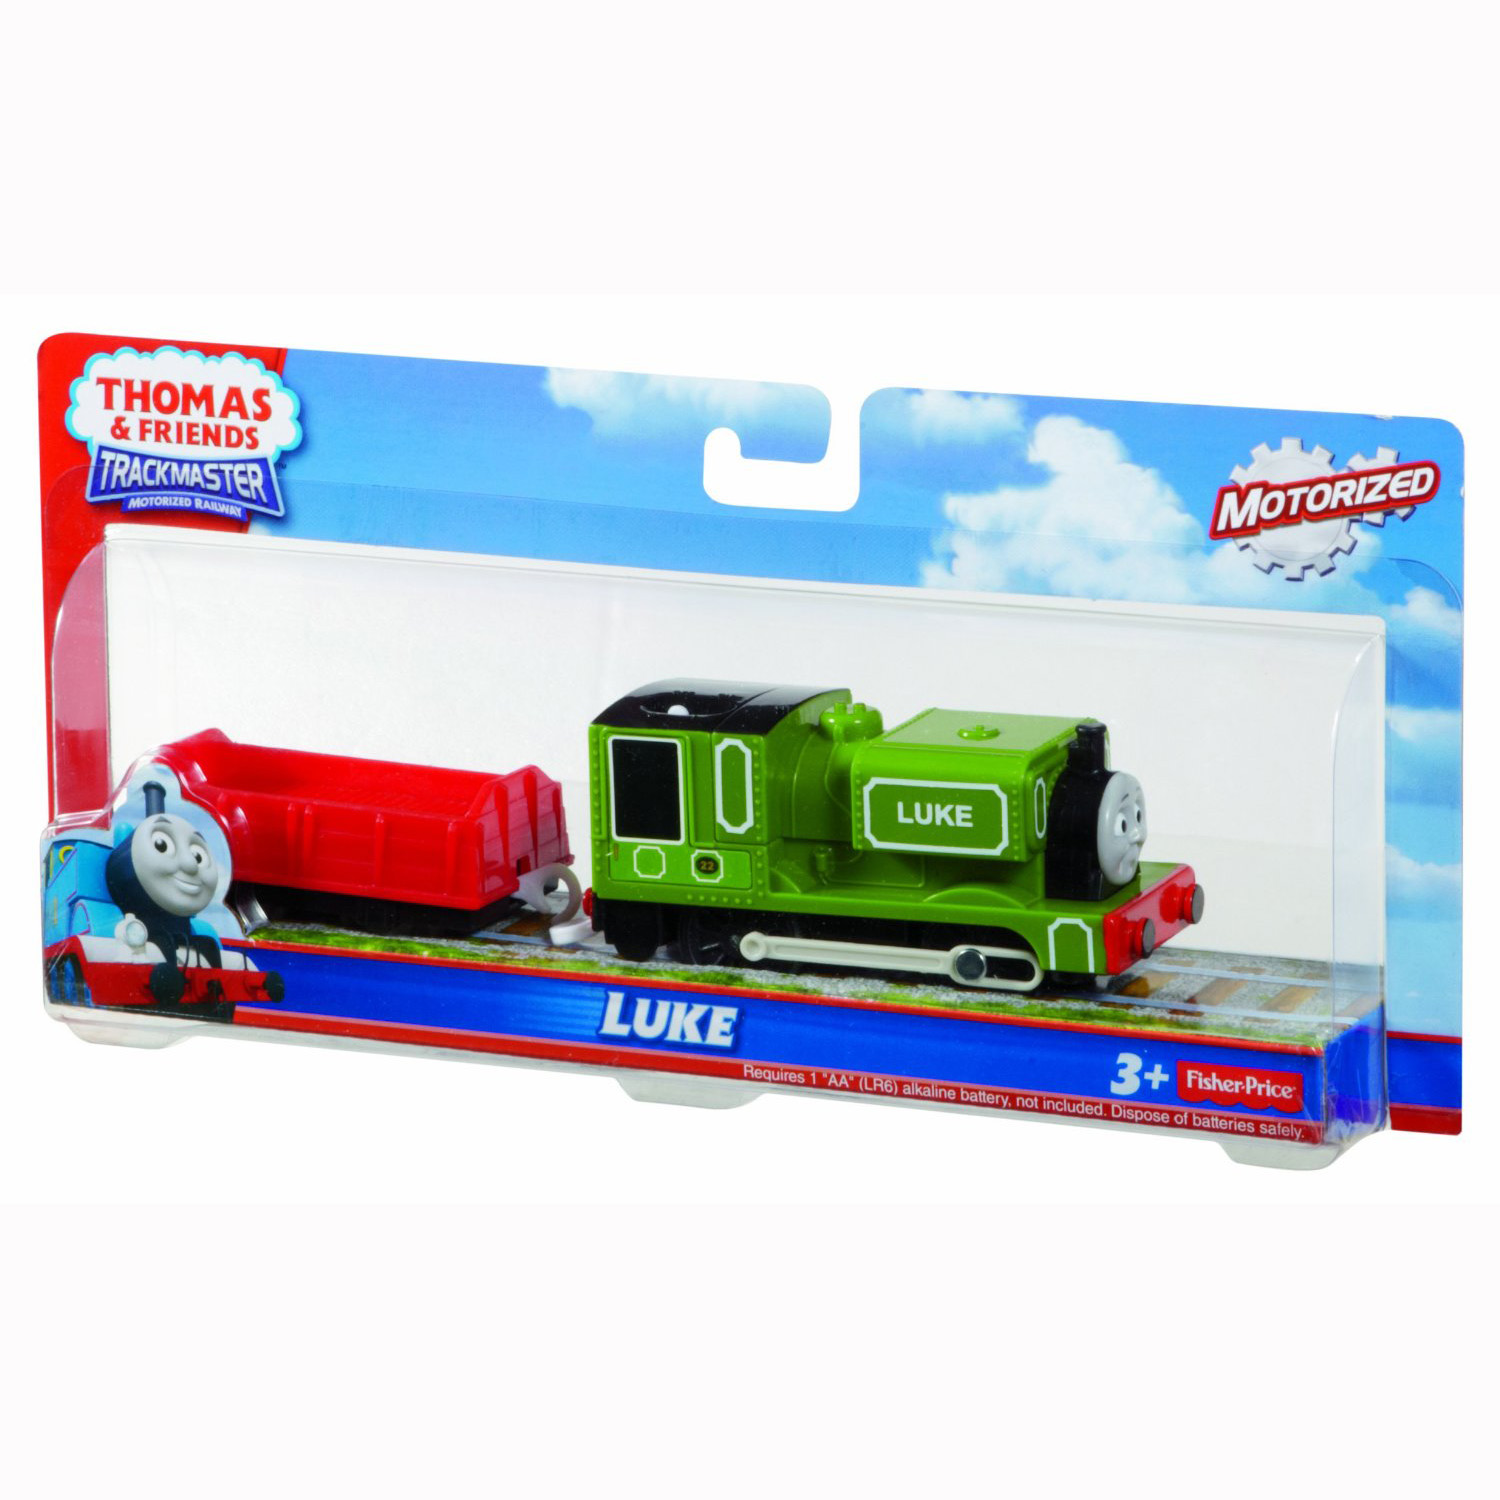 Thomas And Friends Trackmaster Trains Motorized Luke